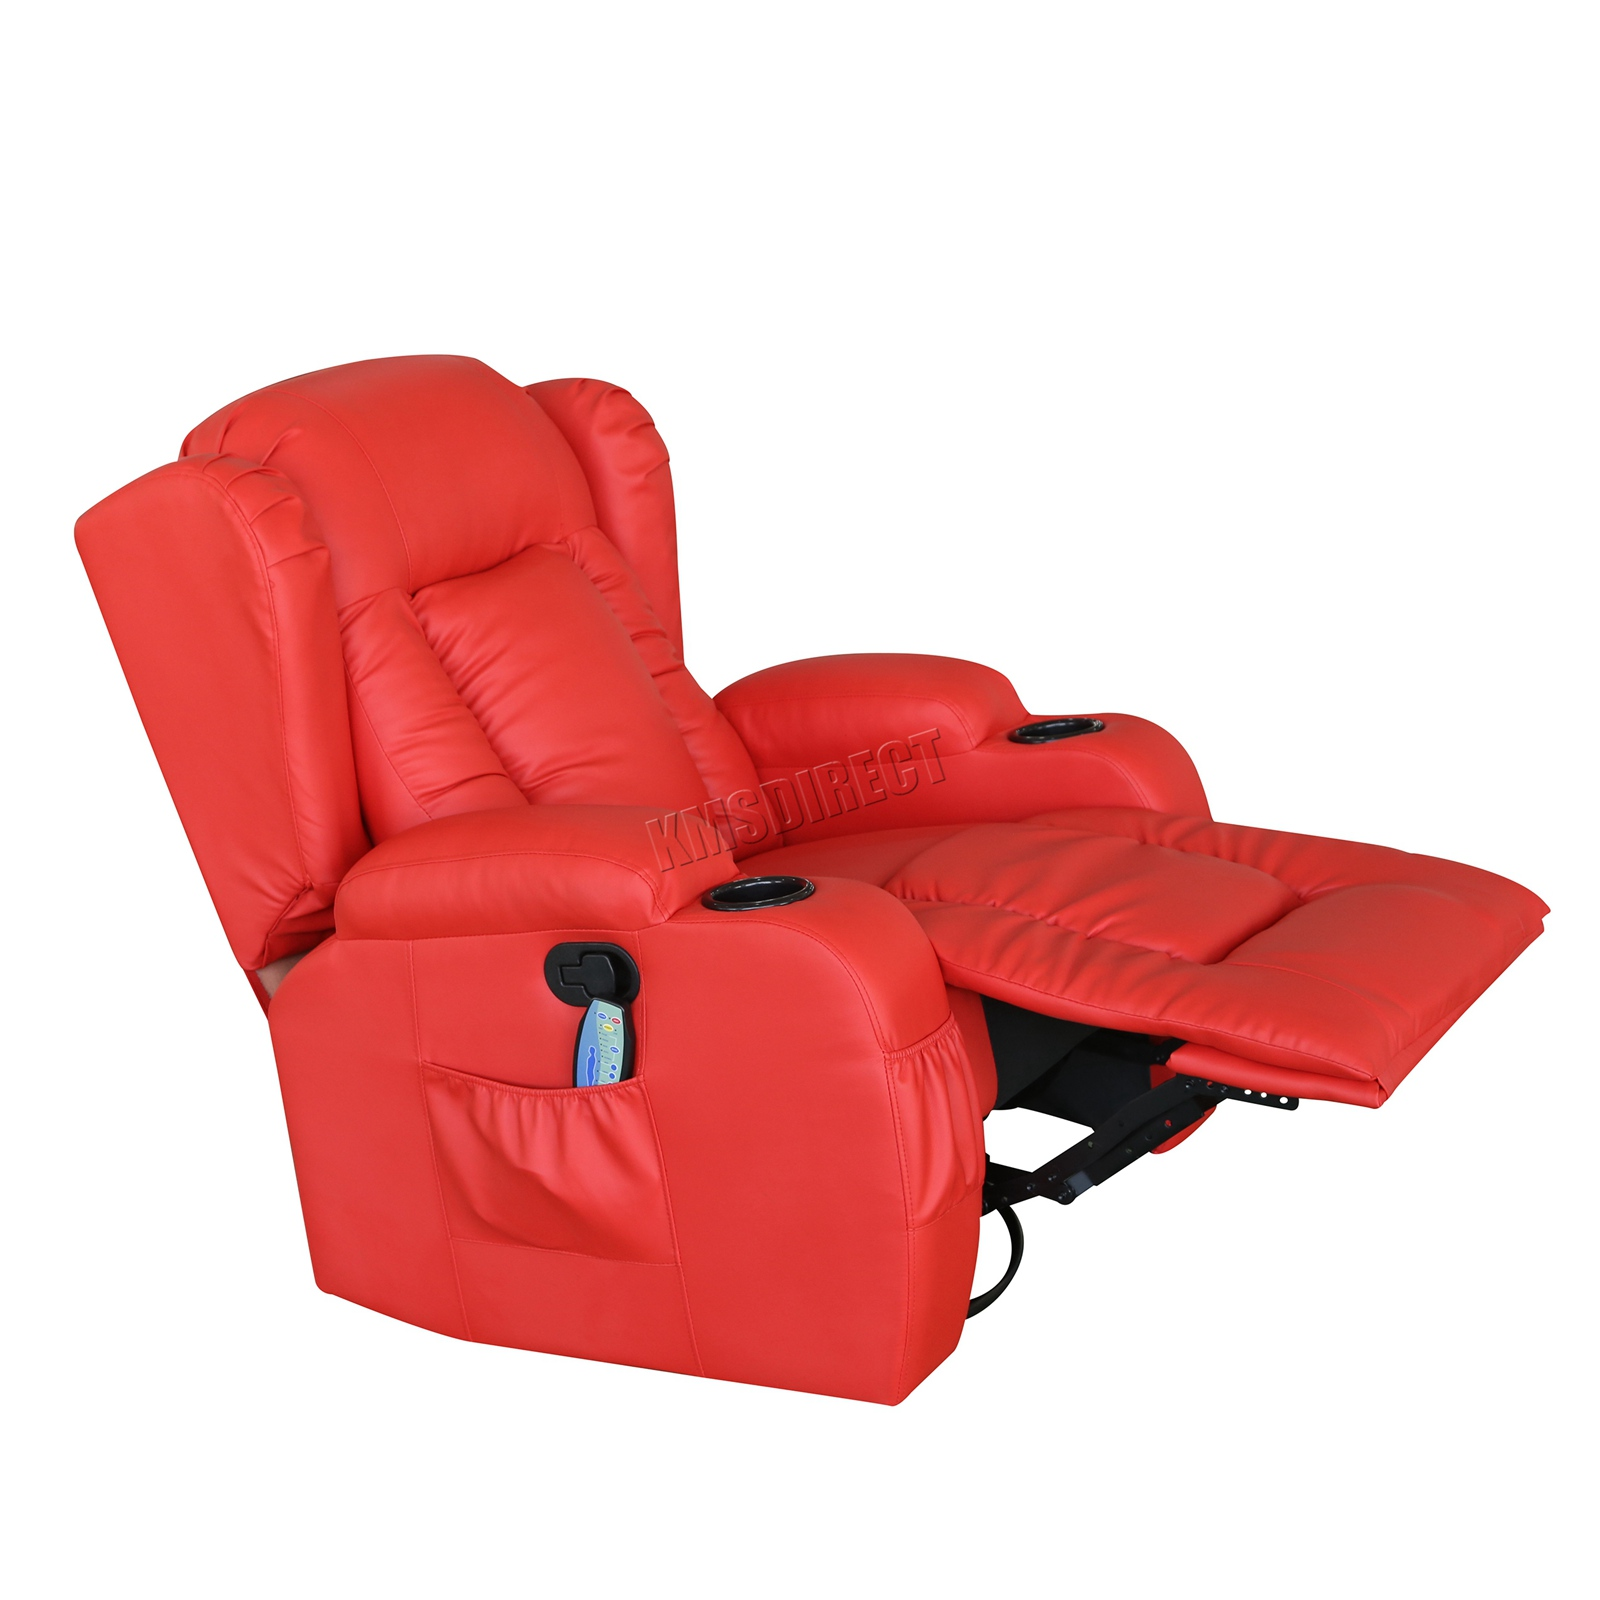 WESTWOOD-Leather-Recliner-Armchair-Swivel-Heated-chair-Massage-Gaming-Chair thumbnail 52